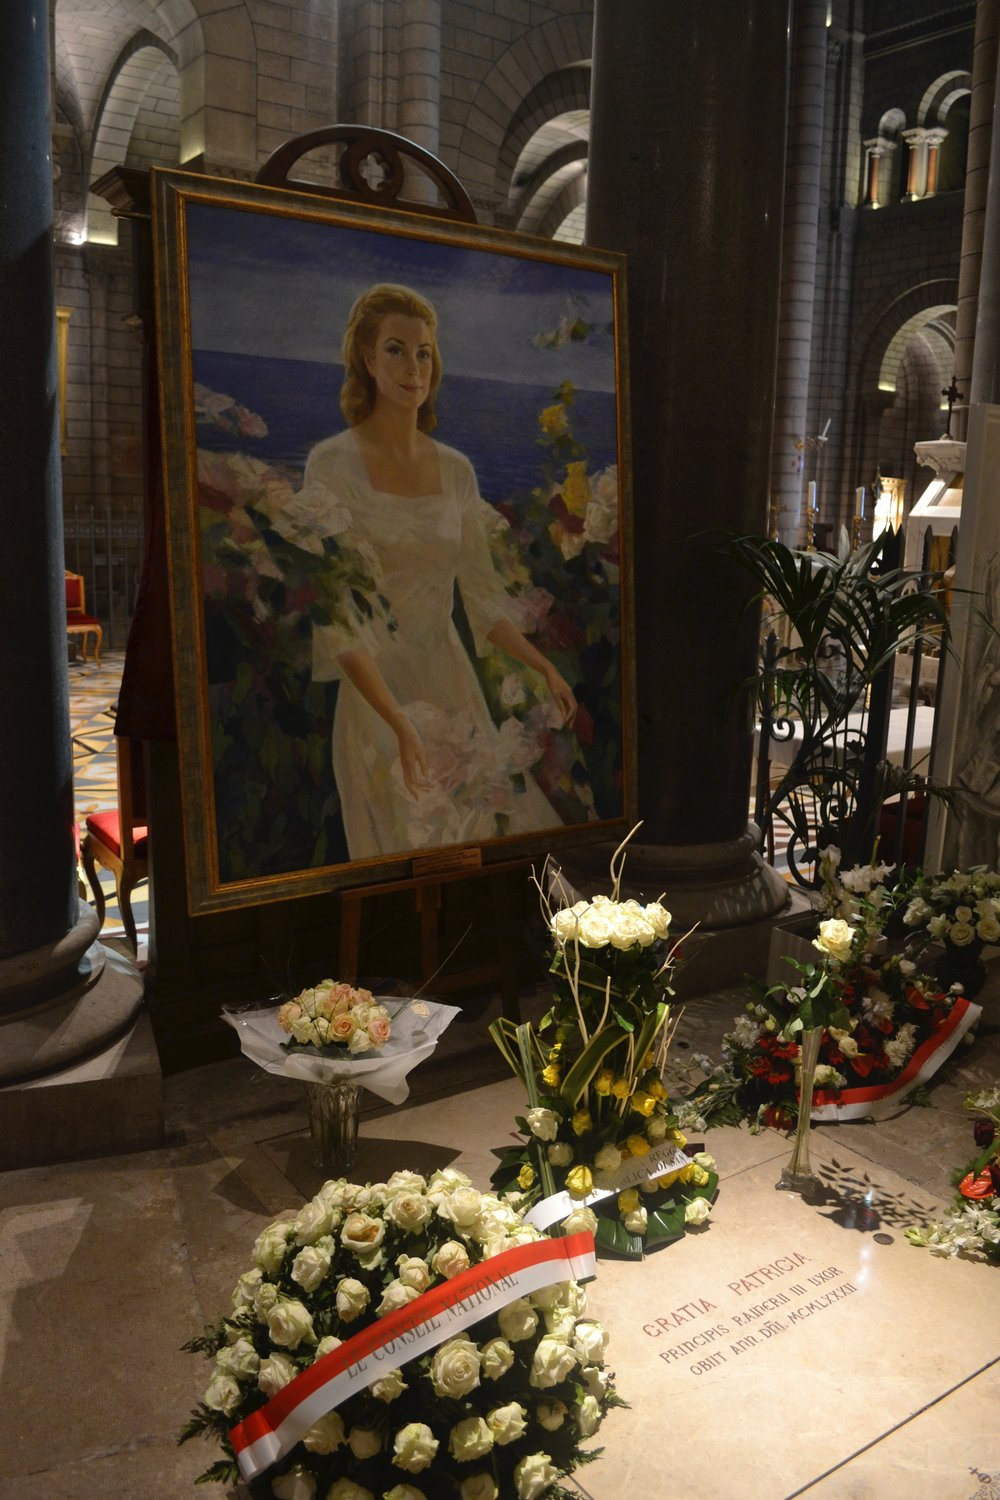 The Grave of Grace Kelly